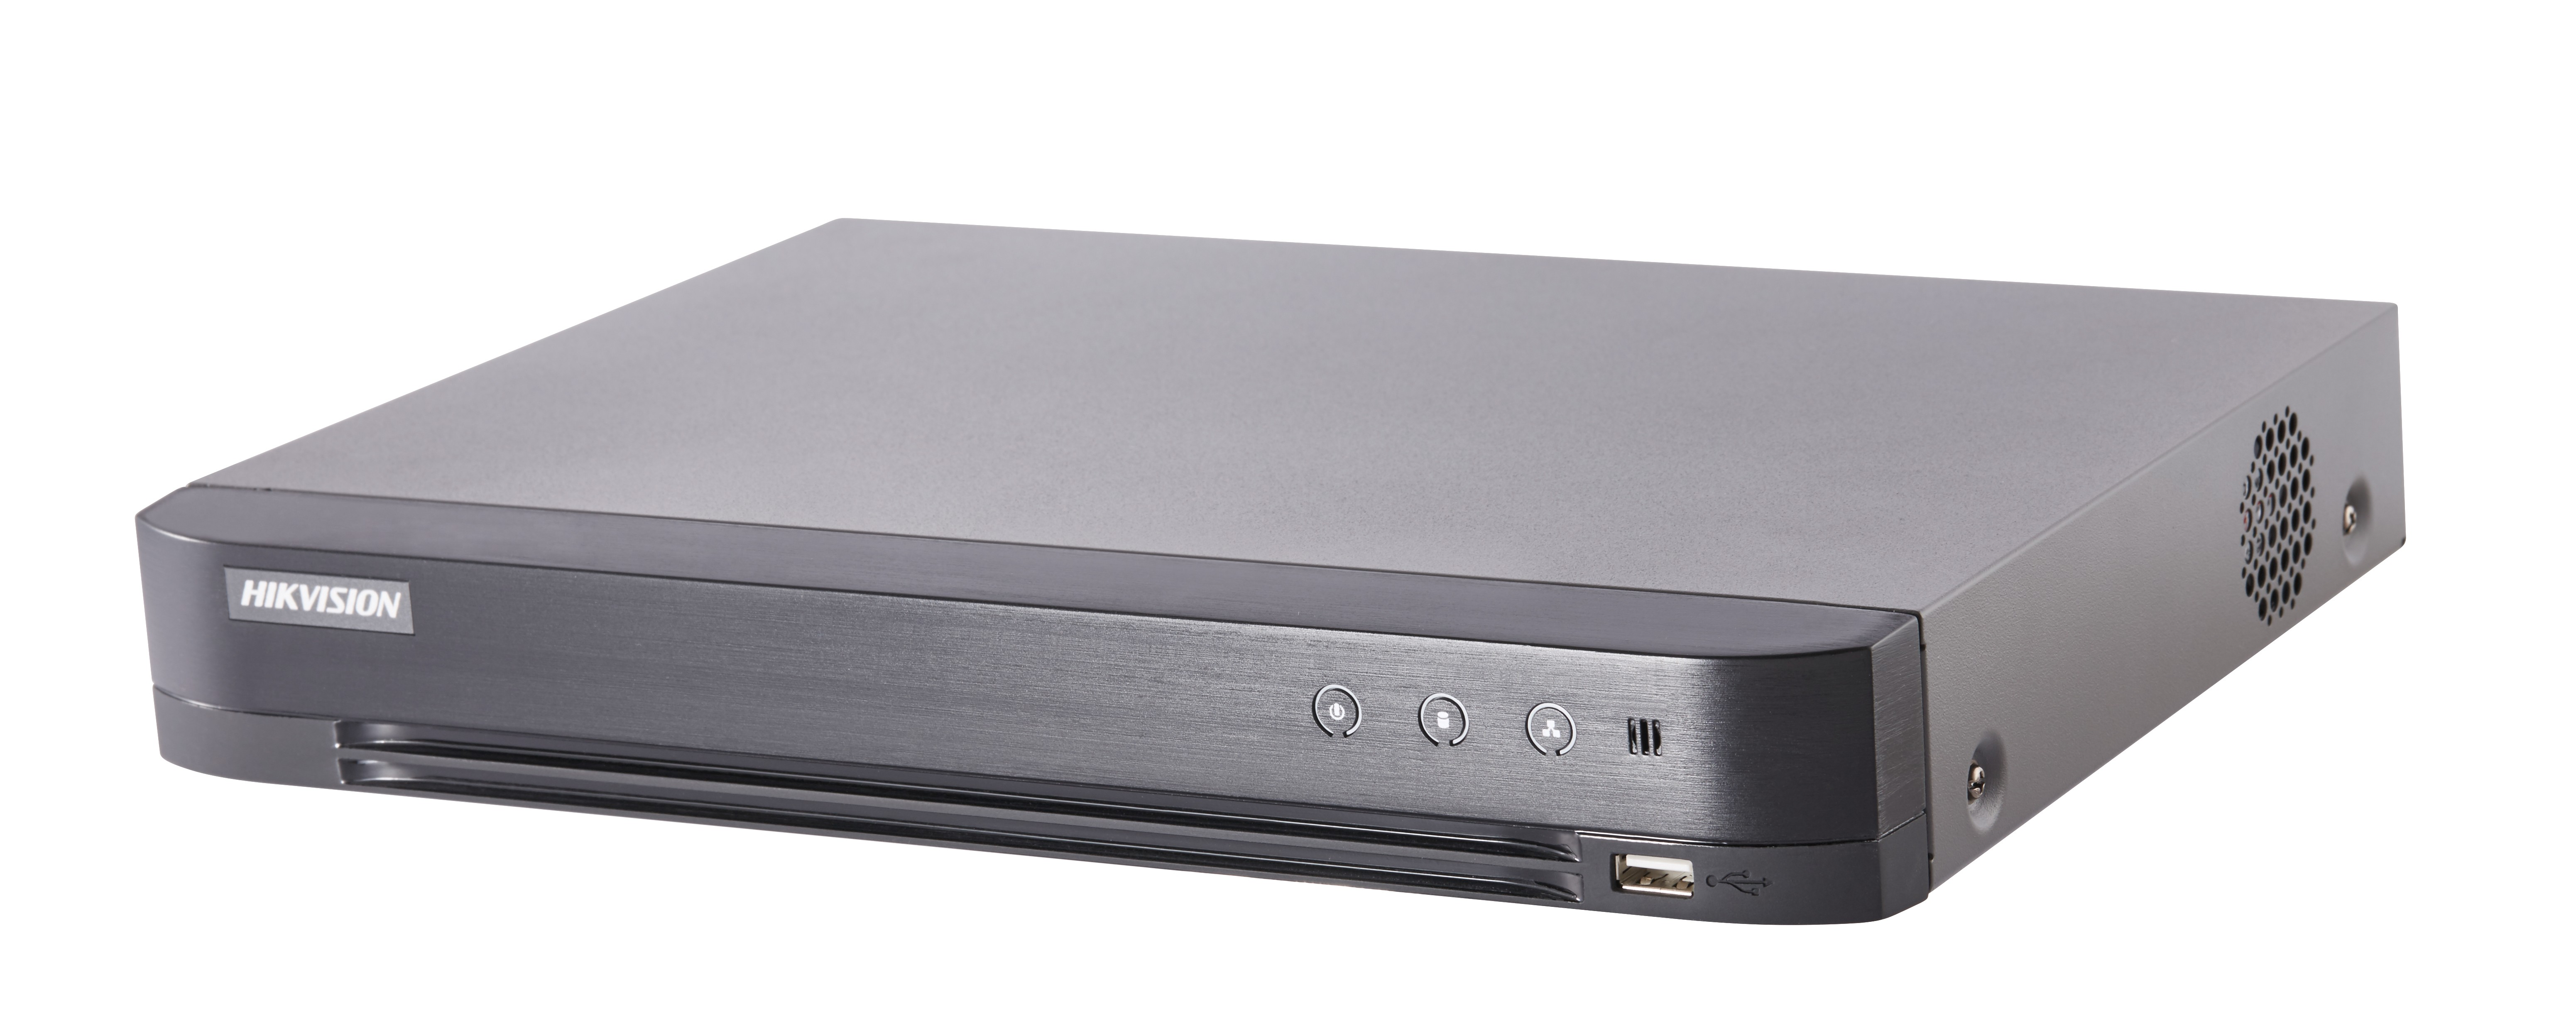 Hikvision IDS-7208HUHI-K1/4S(B) 8 Channel 5MP 2nd Generation AcuSense Turbo HD DVR